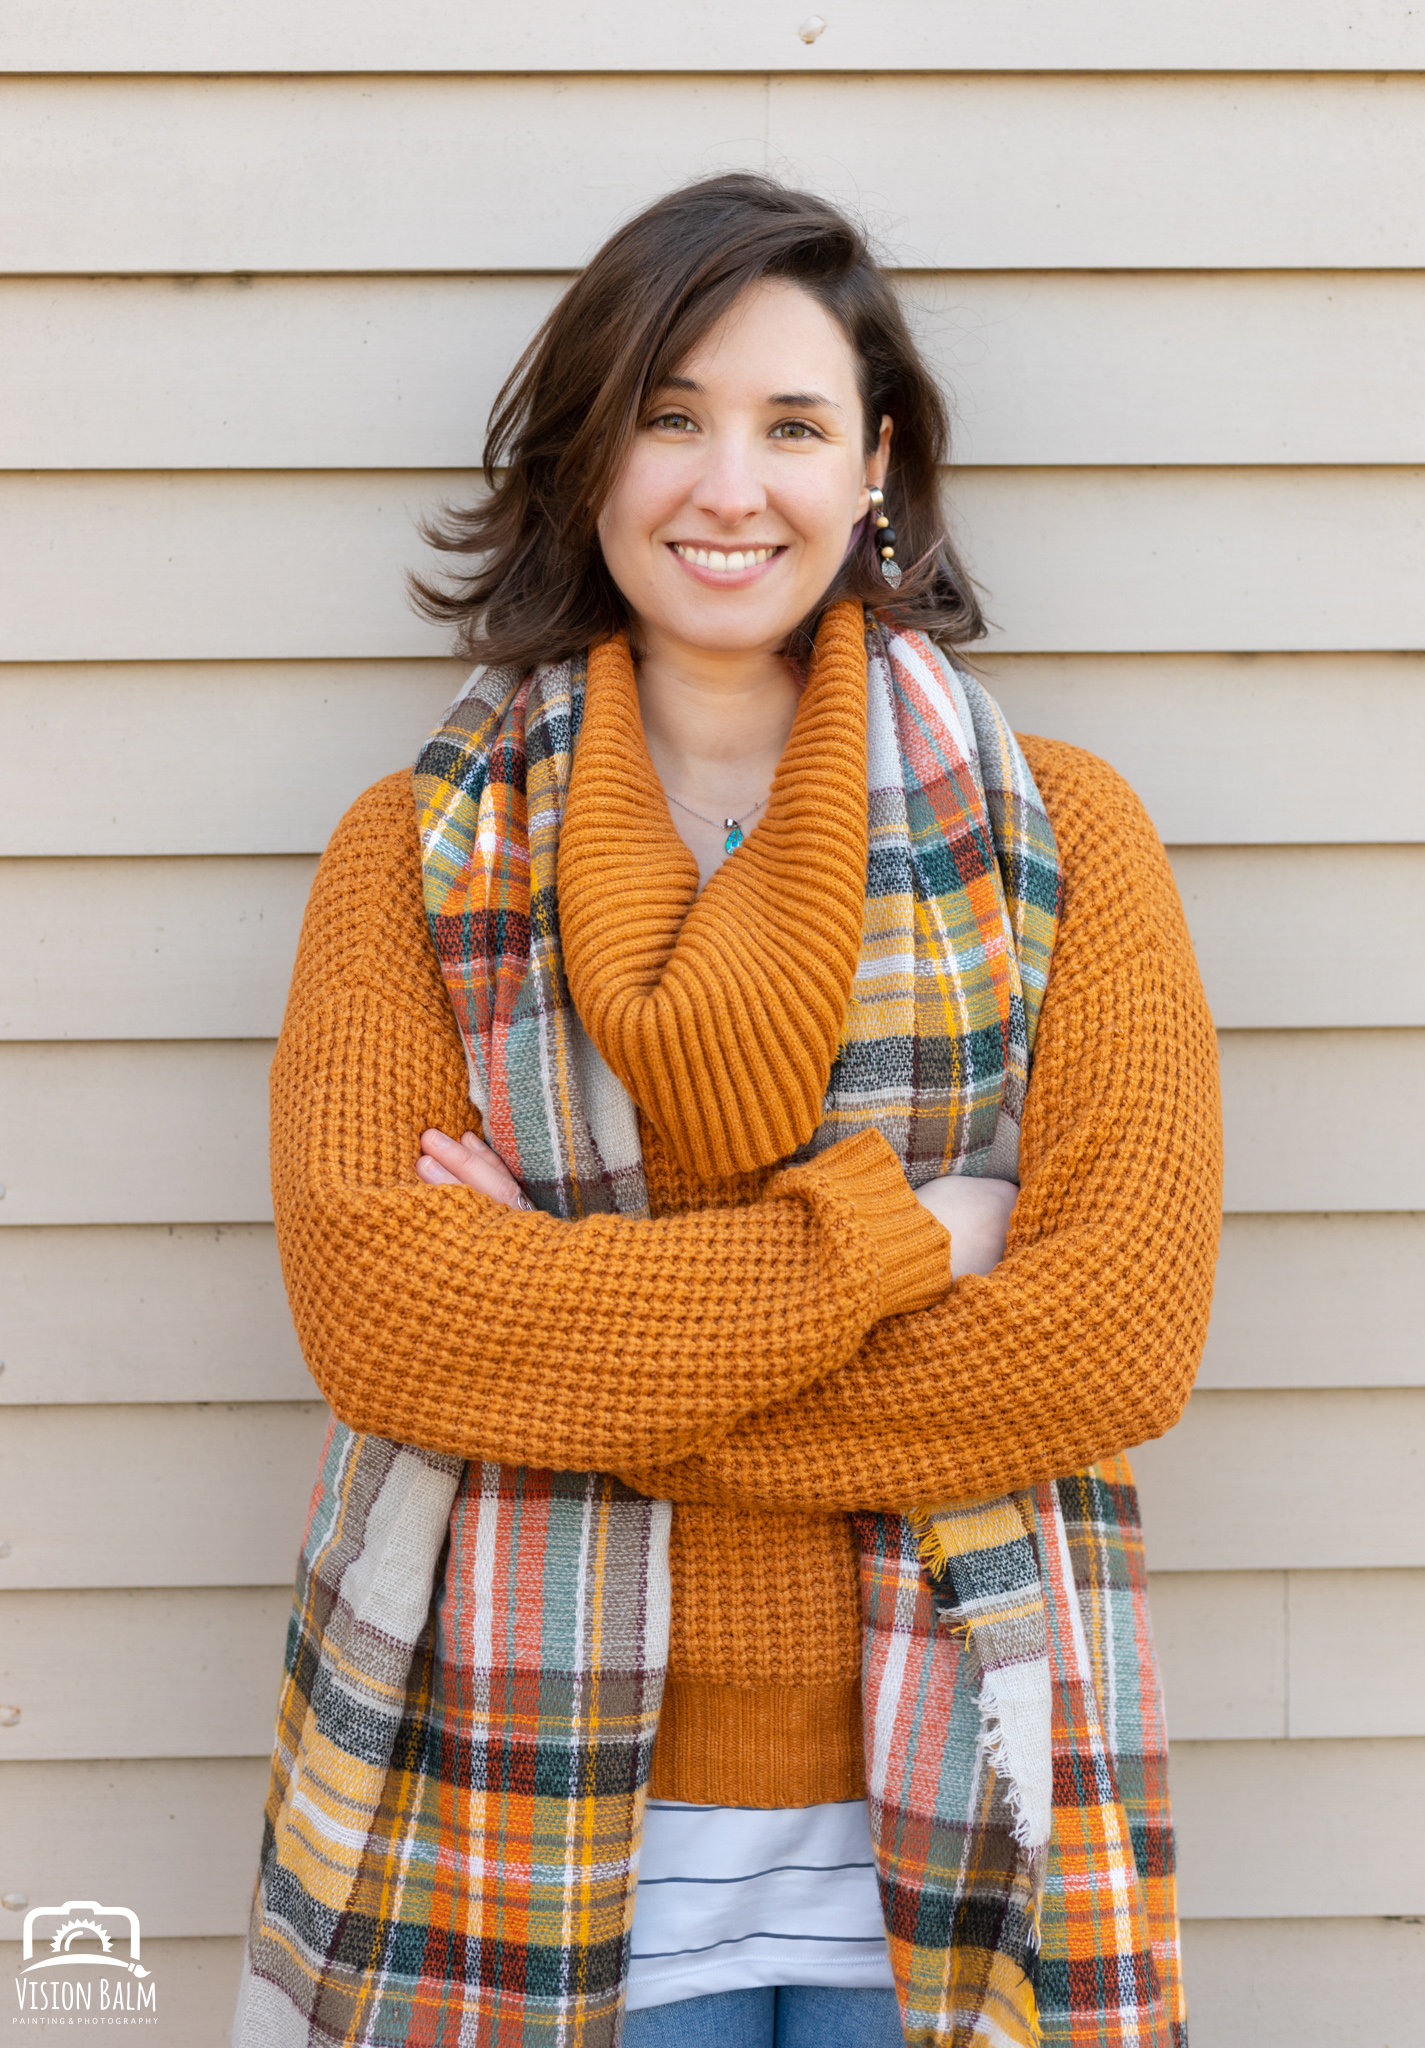 Professional fall portrait photography of Kayla Thornquist comic book artist and illustrator wearing an orange sweater photographed by Vision Balm in Charleston, SC.